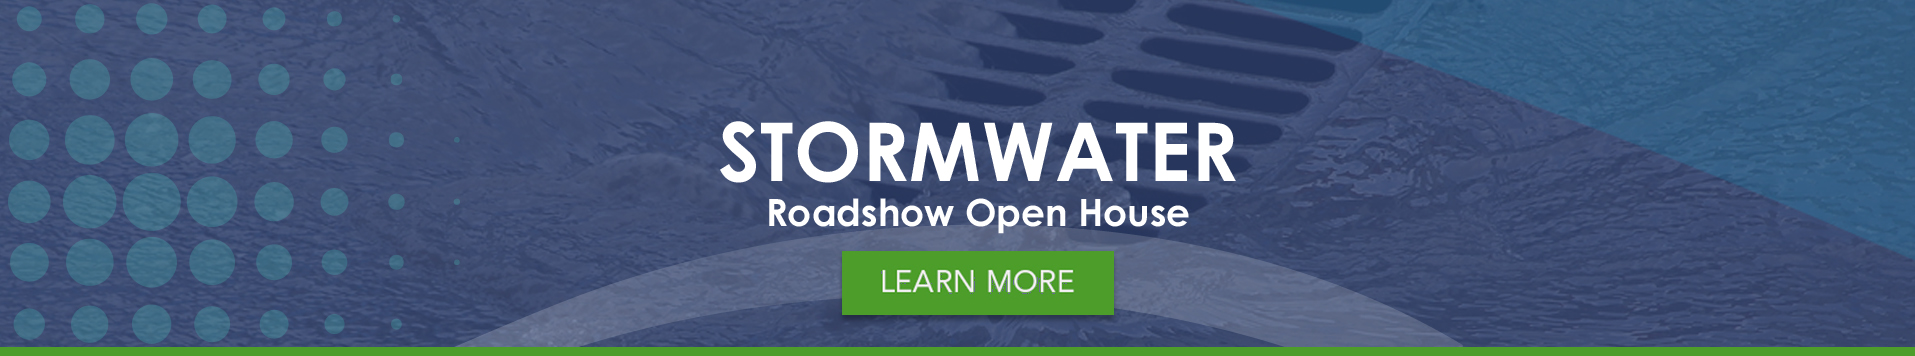 Stormwater Road Show